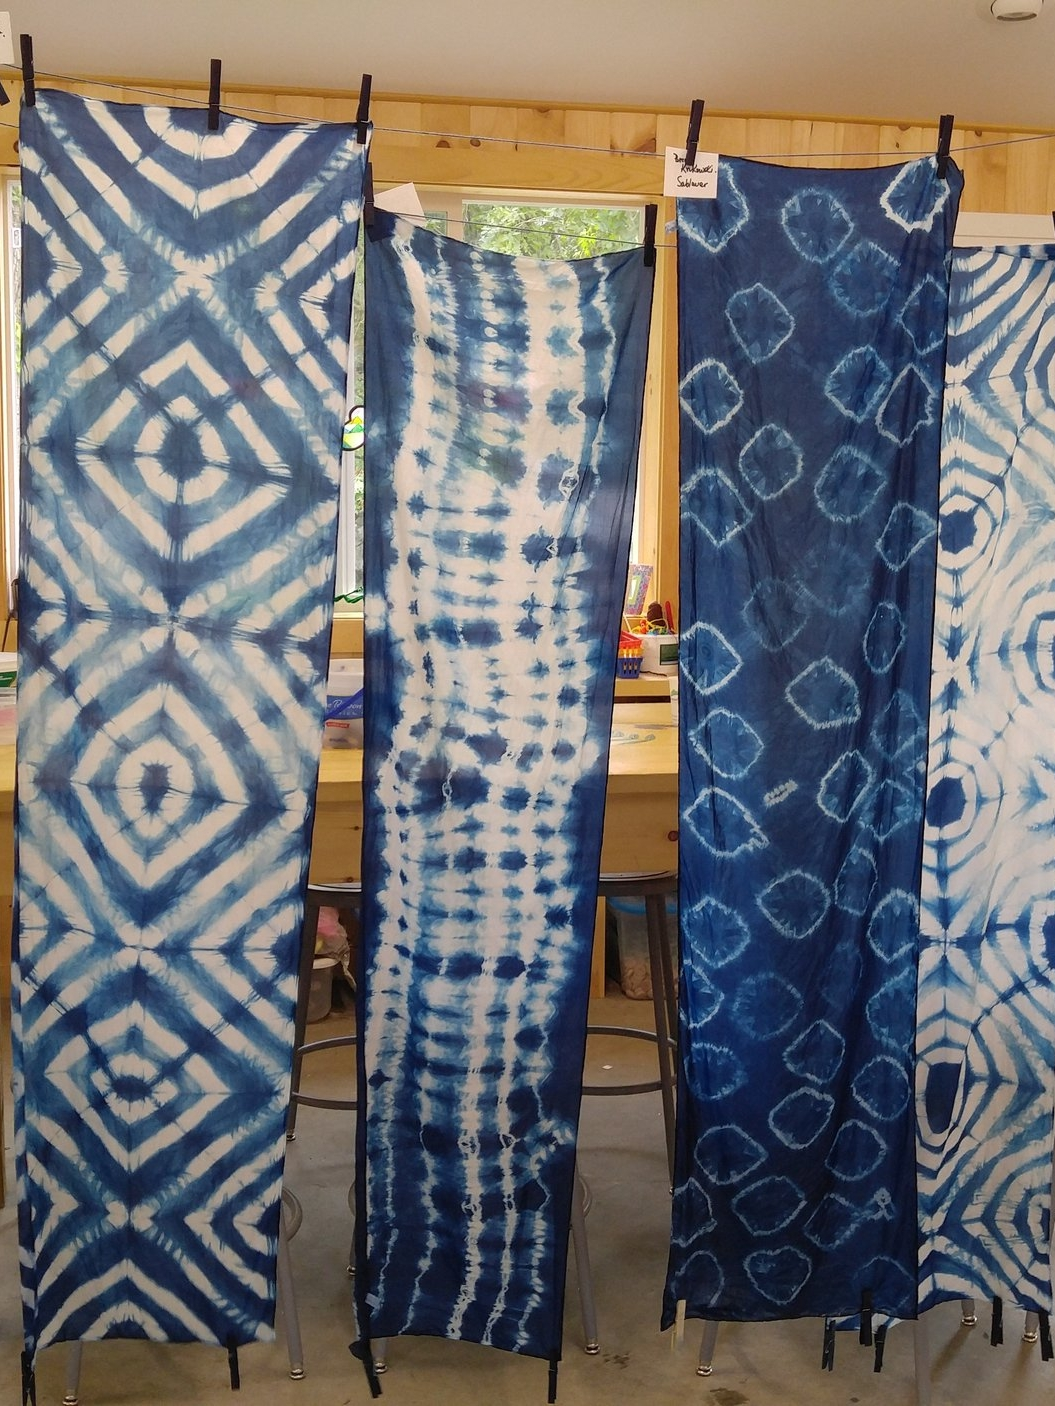 Hannah Pants - Shibori, a centuries old fabric dying process involving binding to create resist areas, and dyed using the indigo pigment